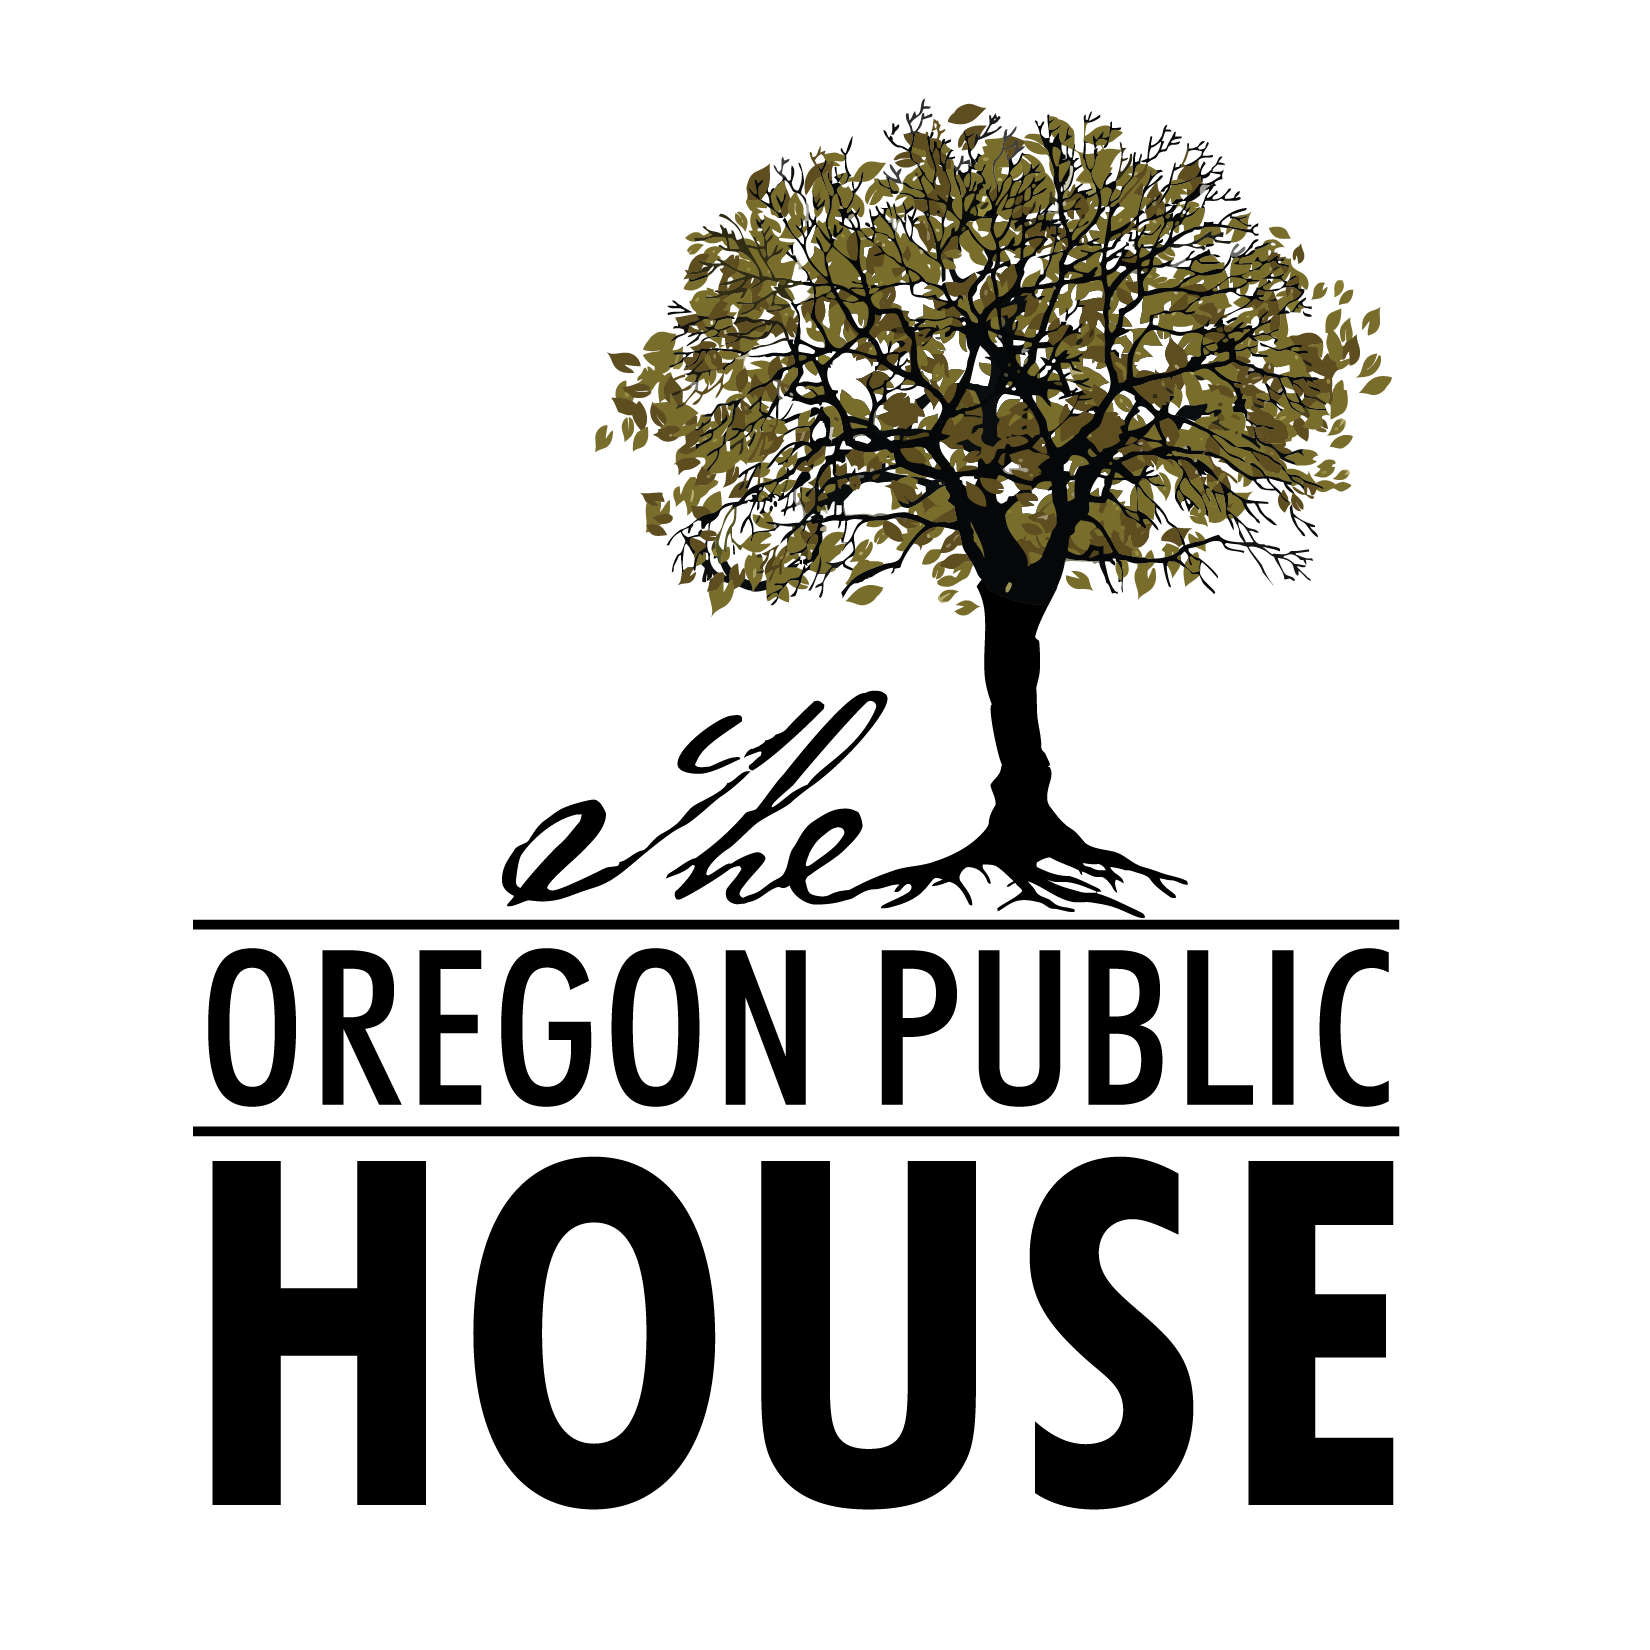 Oregon Public House Logo